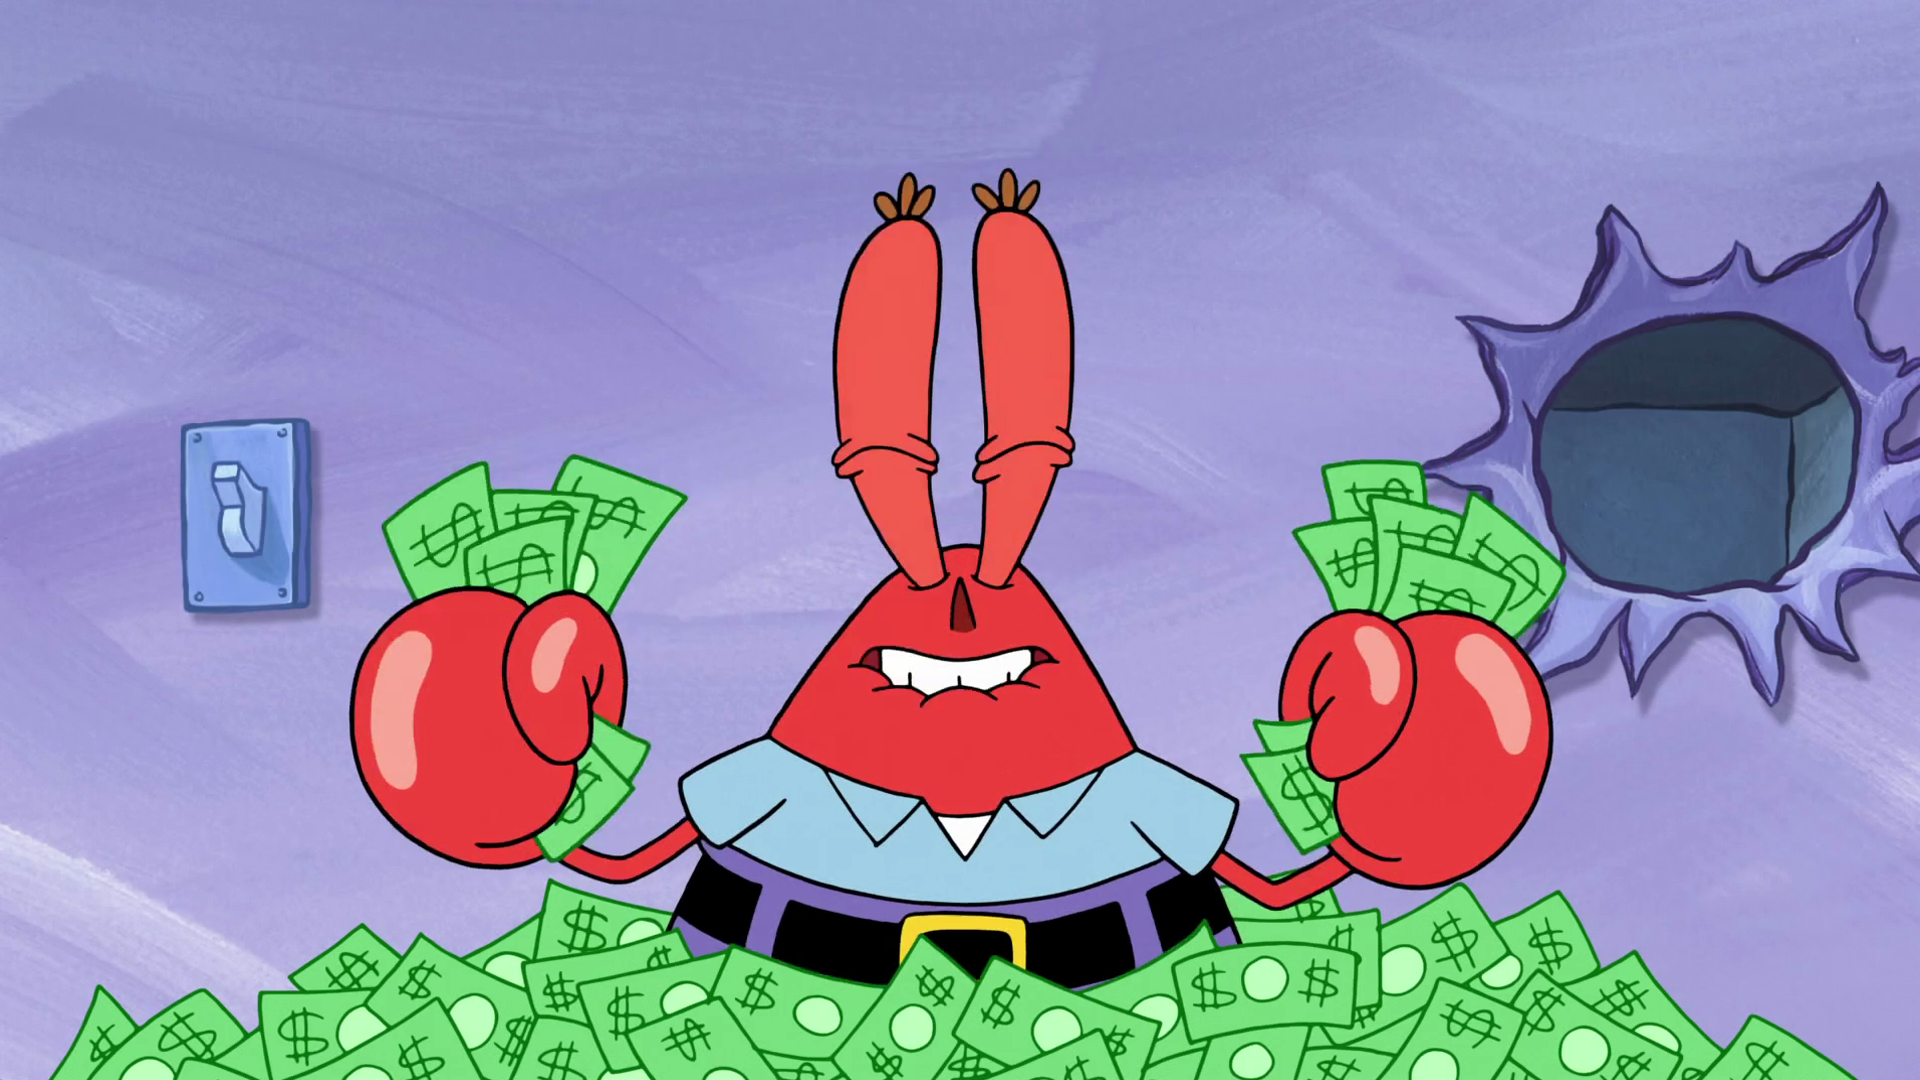 mr krabs desktop wallpaper 63041